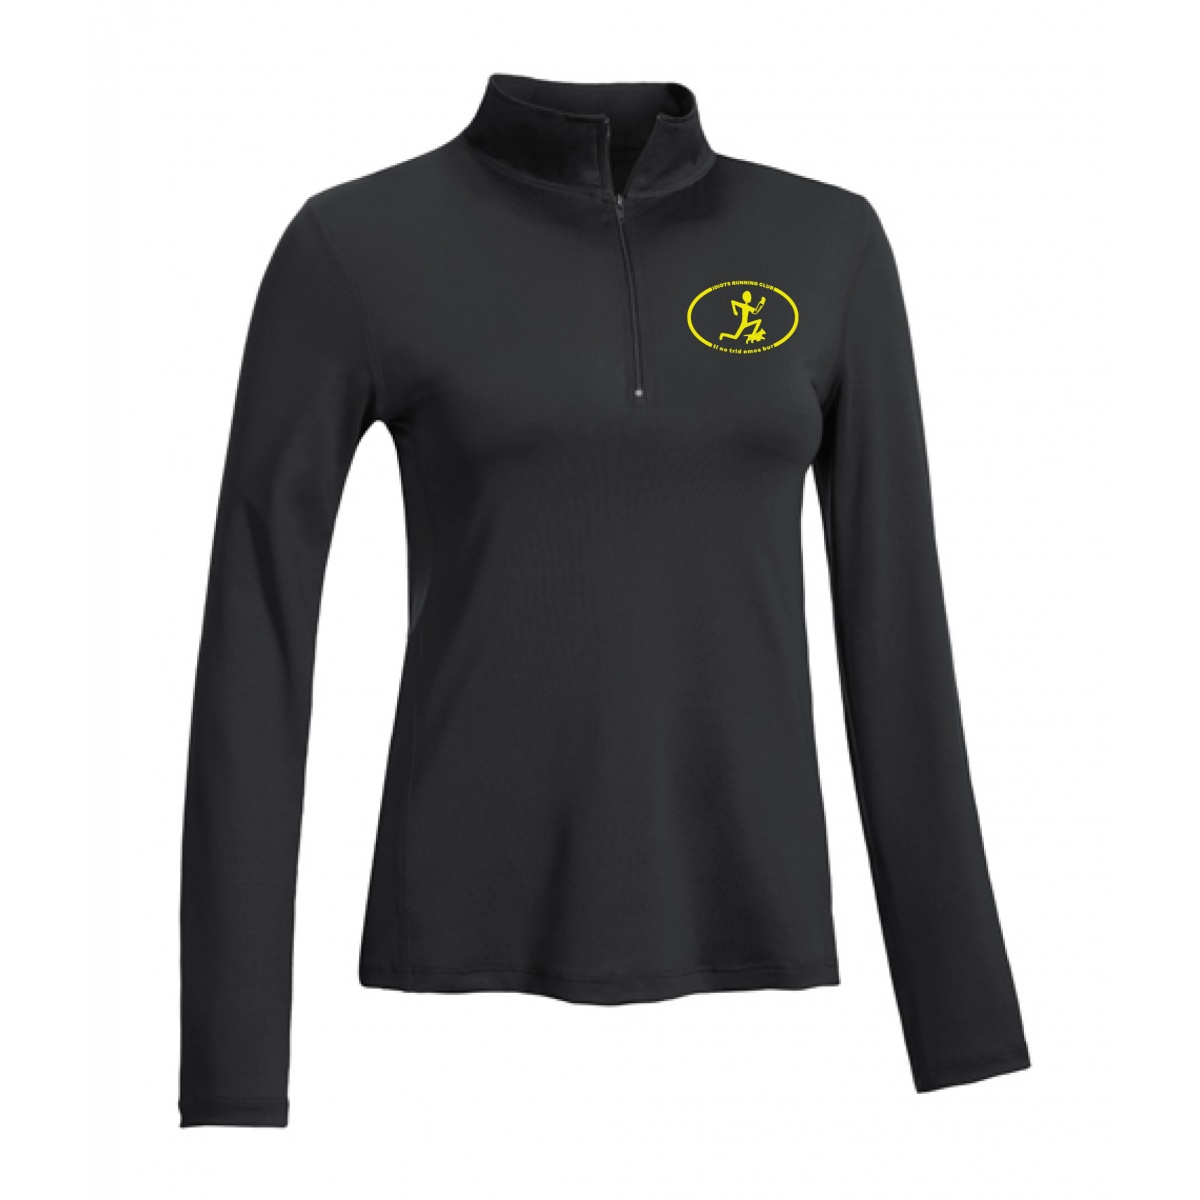 Womens 1/4 Zip Pullover CLEARANCE